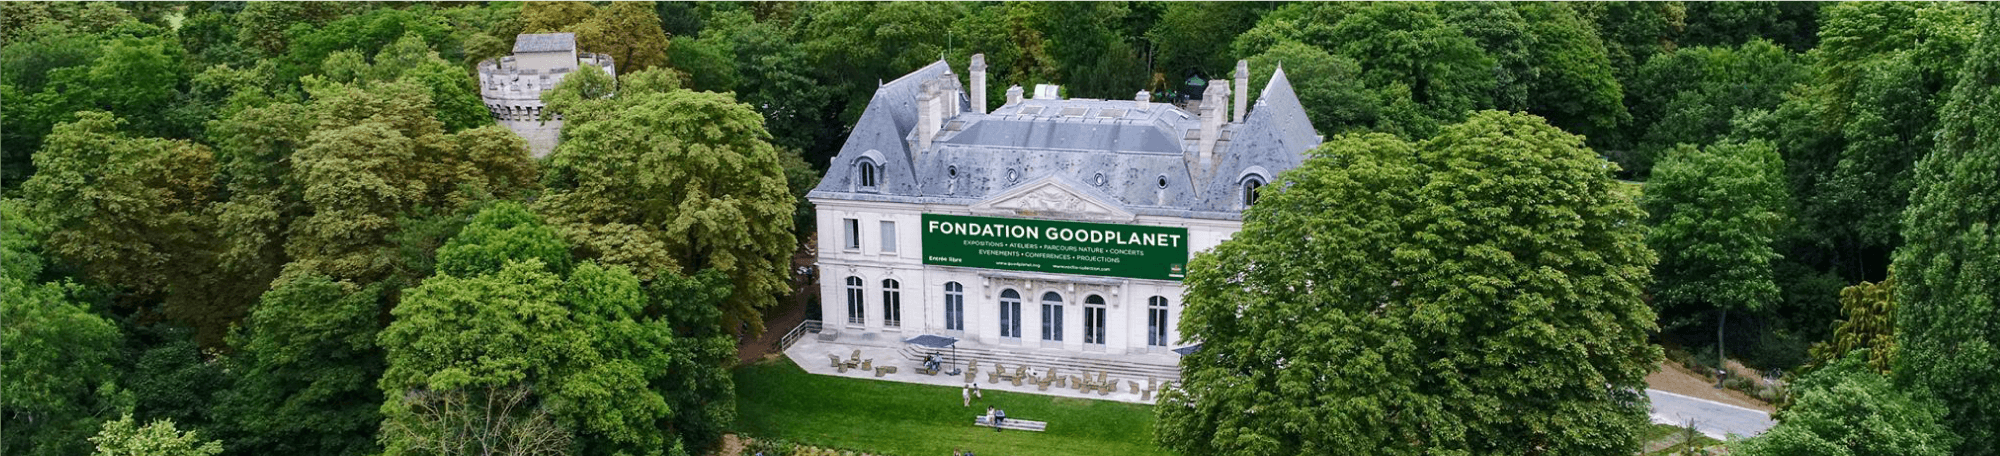 fondation-good-planet